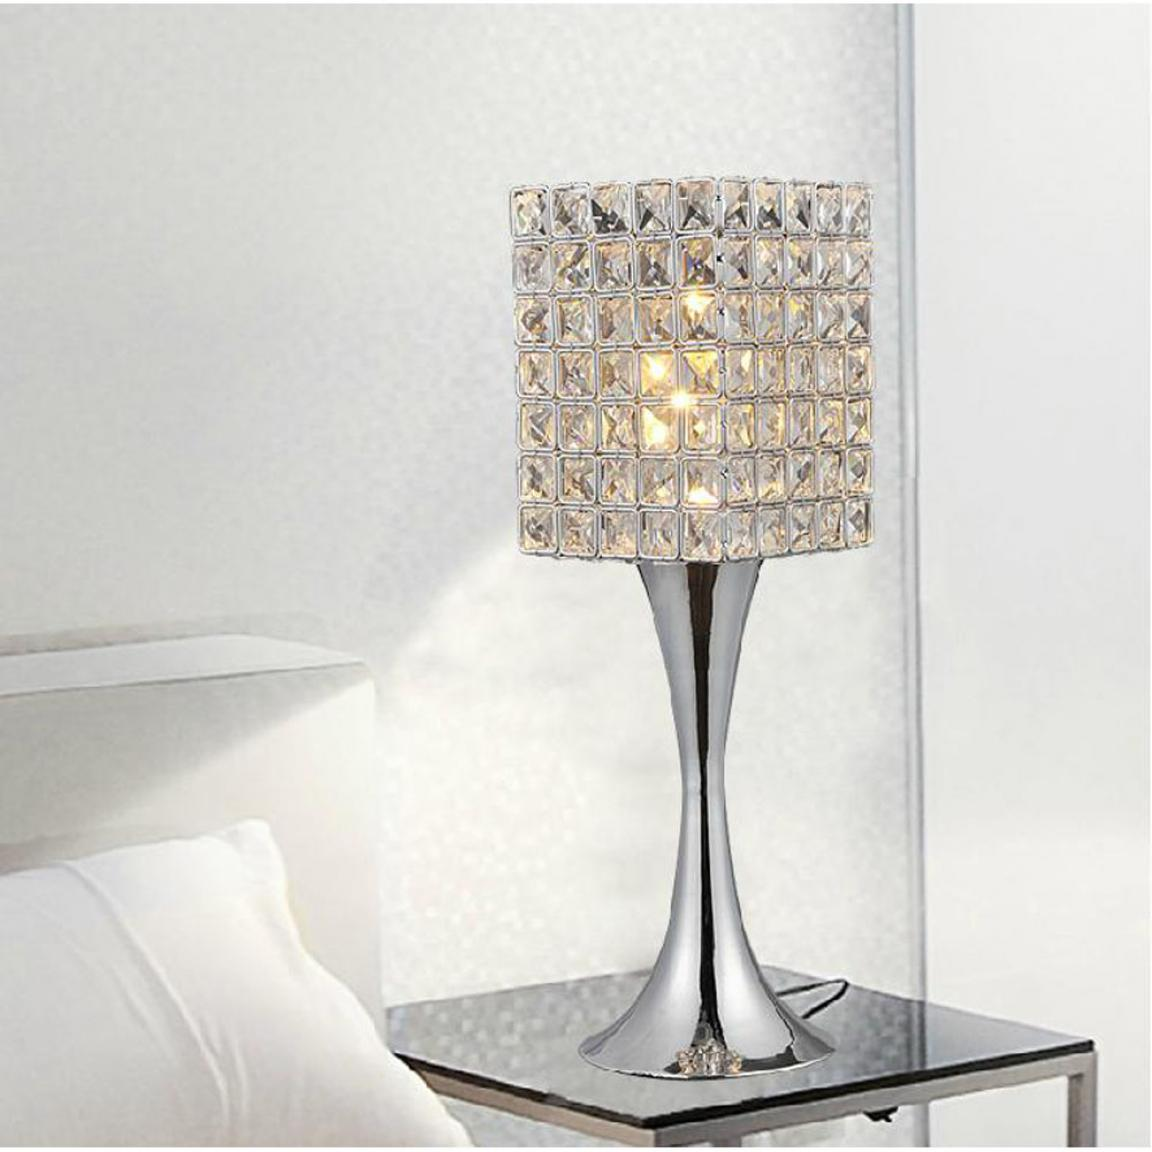 crystal-table-lamp-with-elegant-metal-shape-design